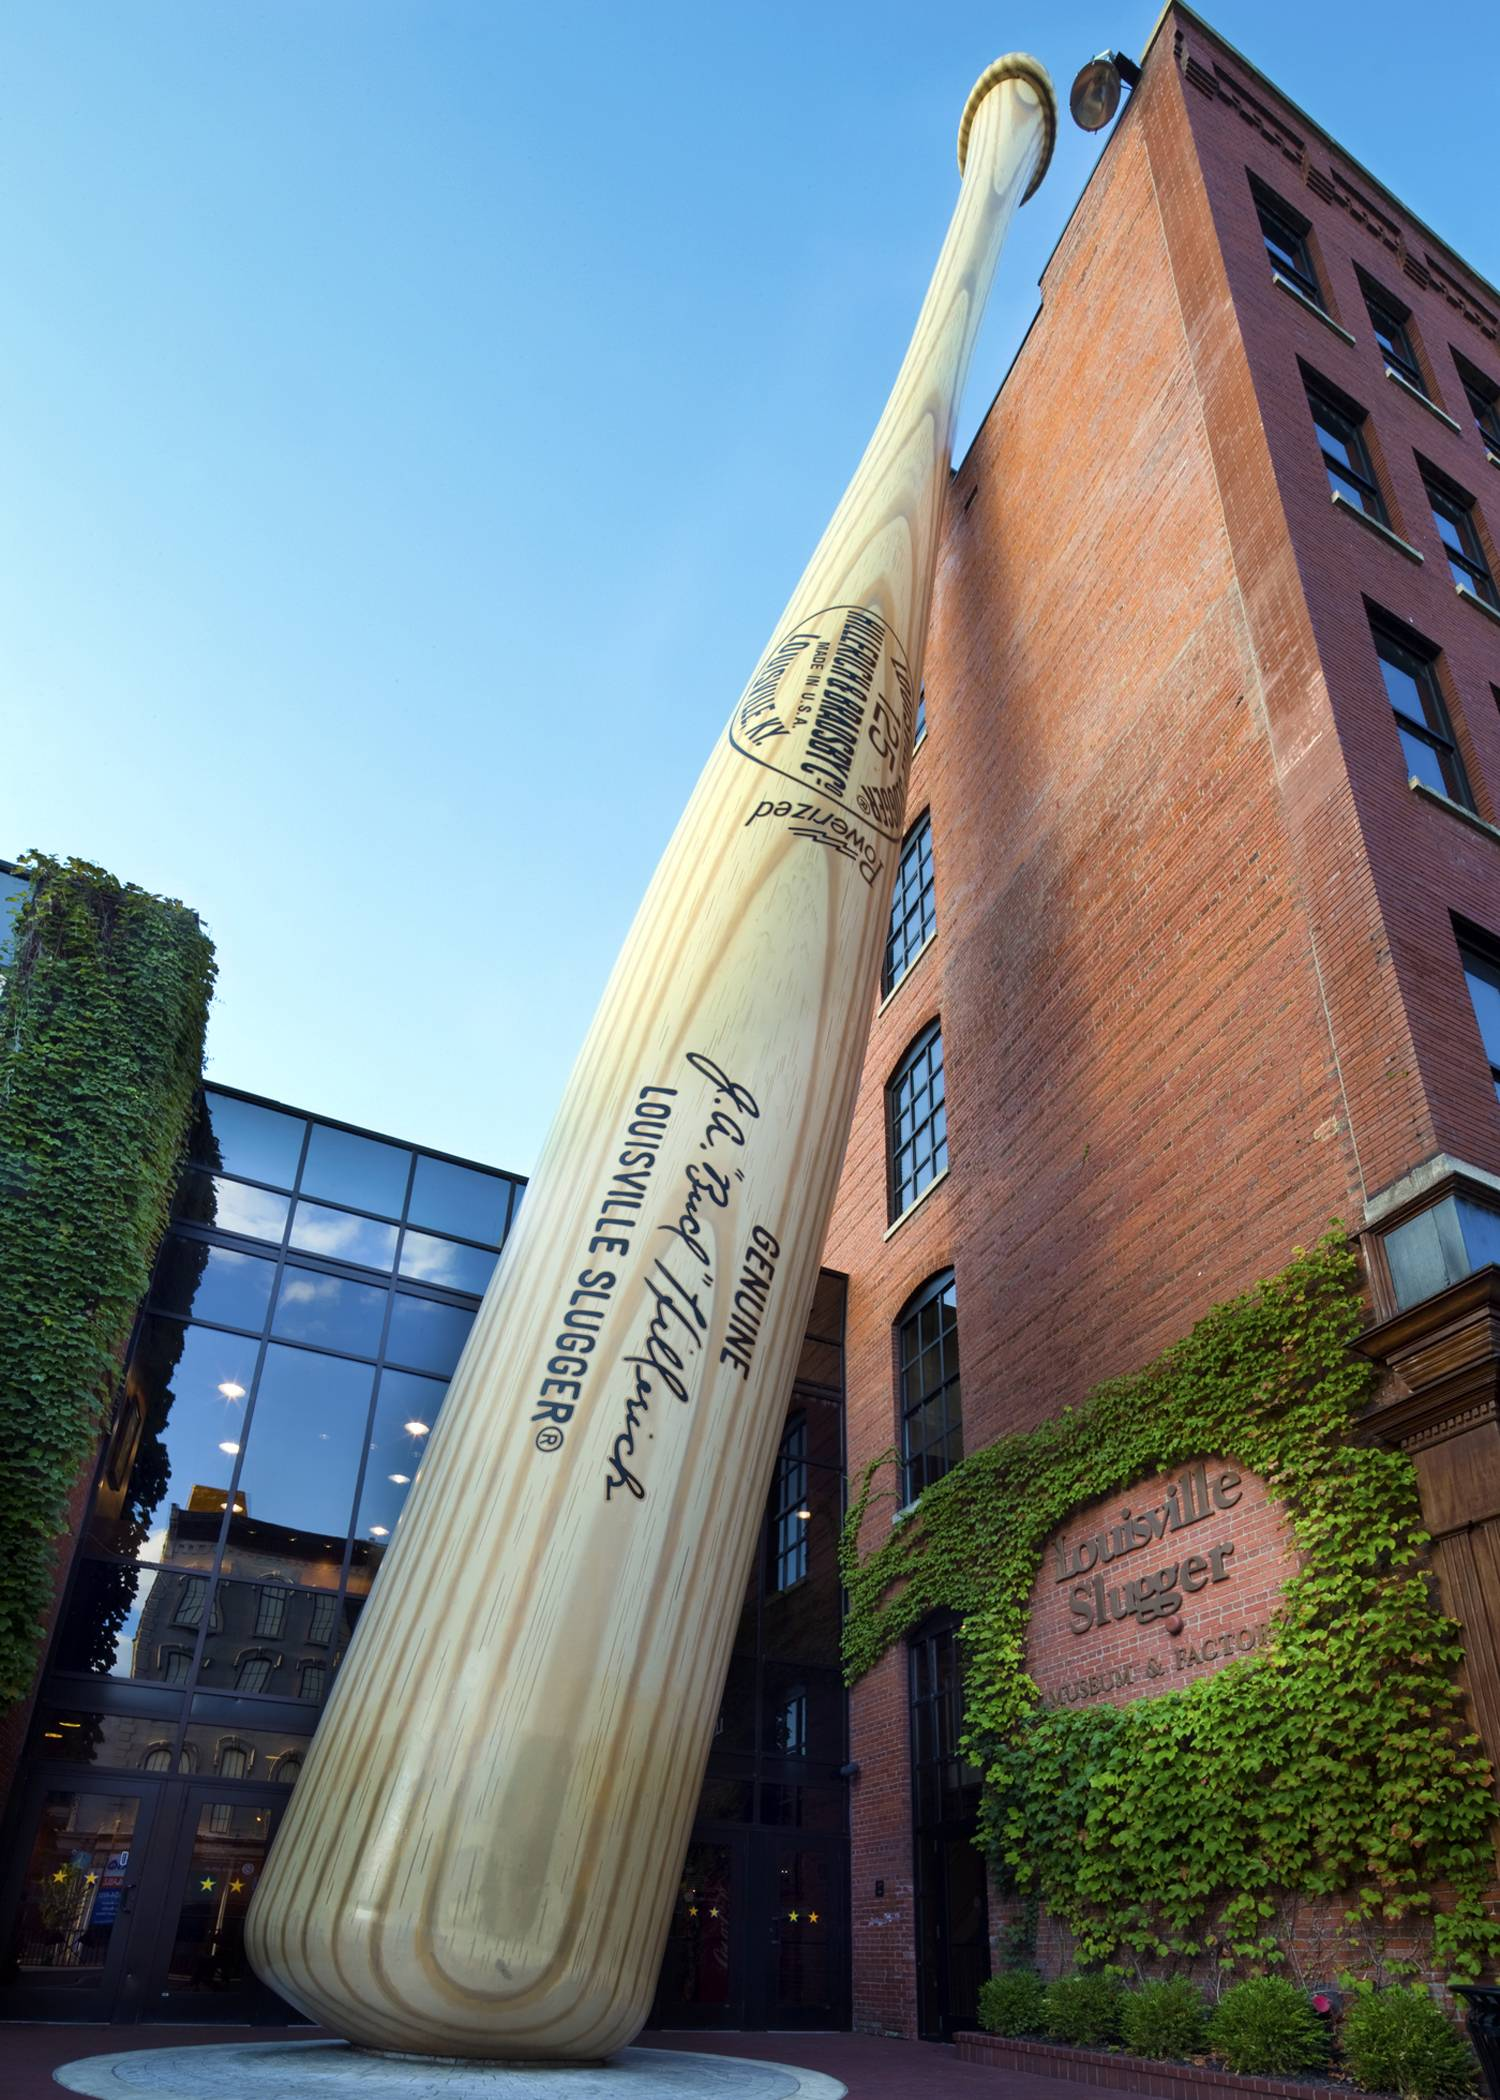 Visitors can trace baseball heritage along the Louisville Slugger Walk of Fame, stretching about a mile from the Louisville Slugger Museum & Factory to the city's minor-league ballpark in Louisville, Ky.